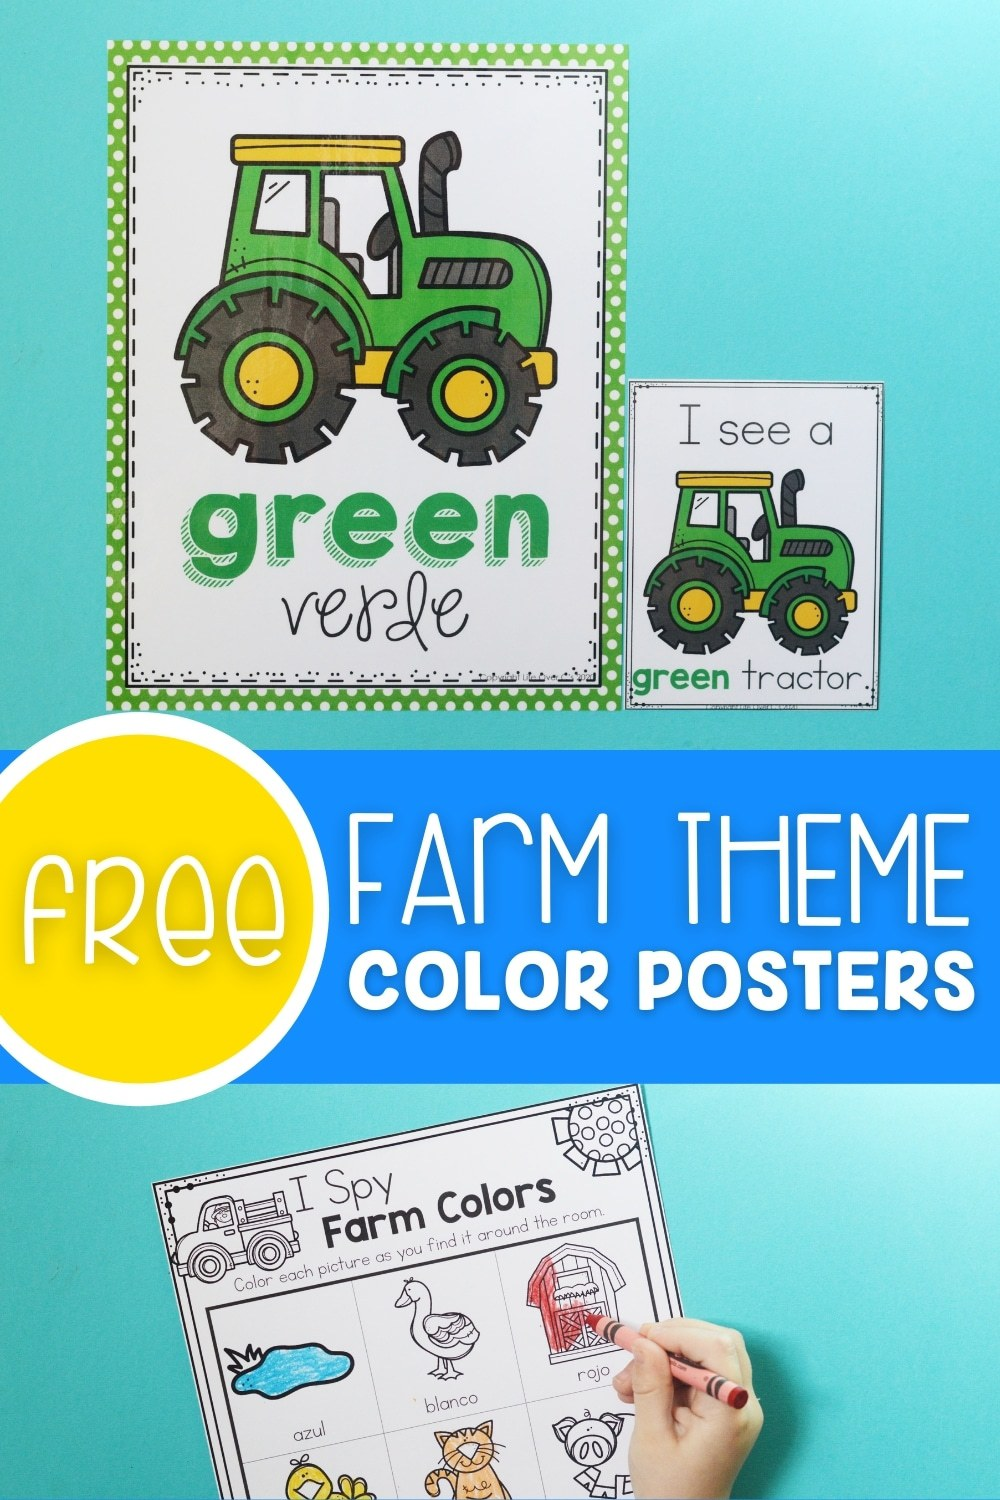 Free Farm Theme Color Posters Printable